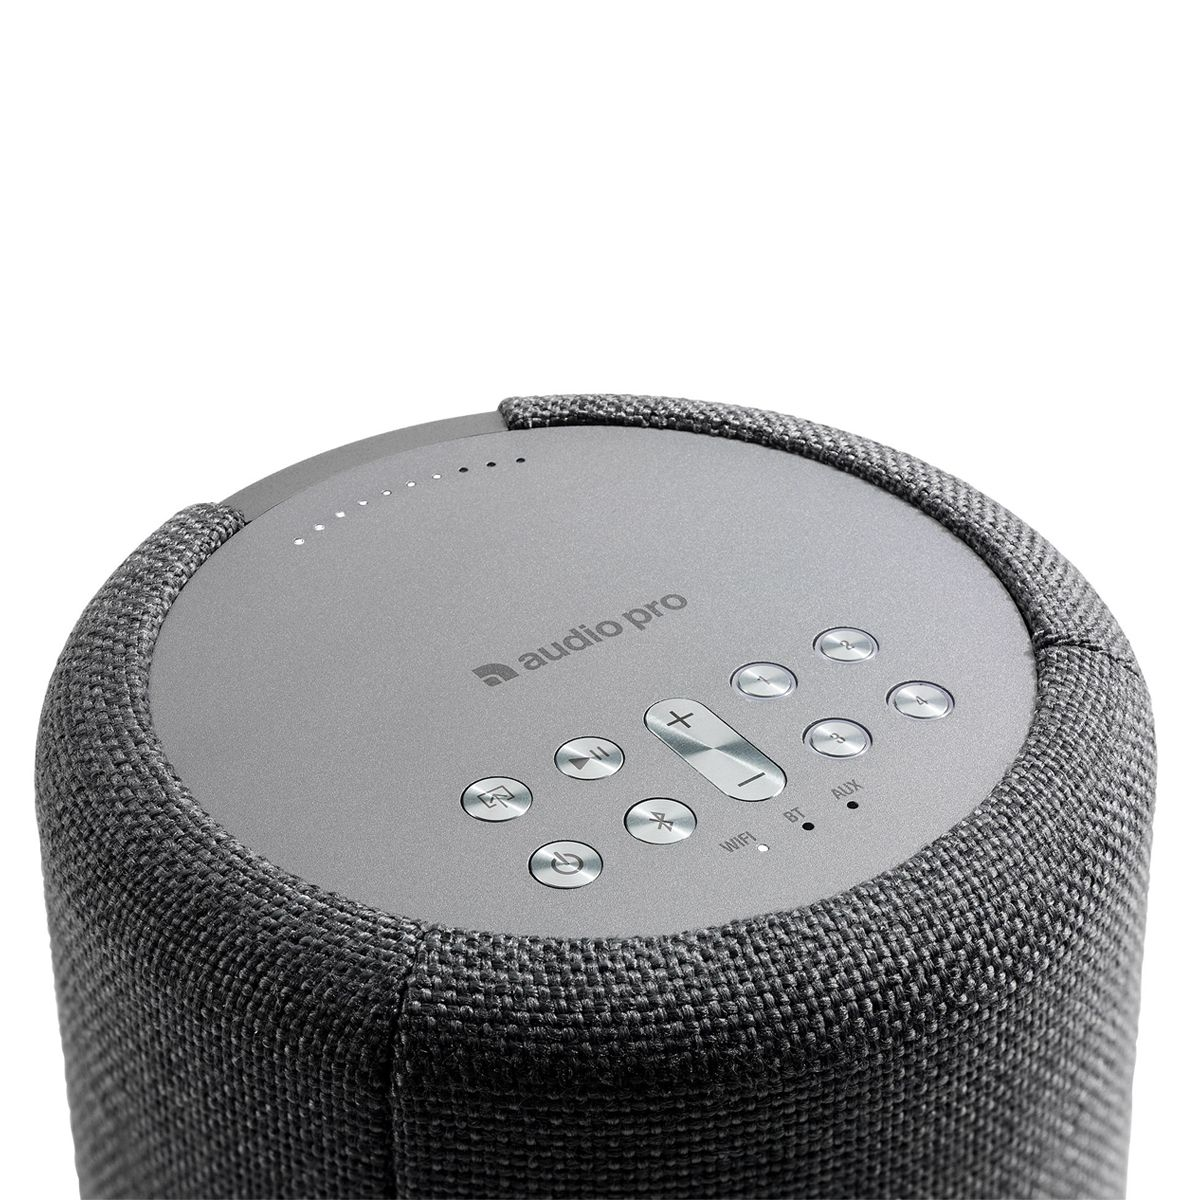 AudioPro A10